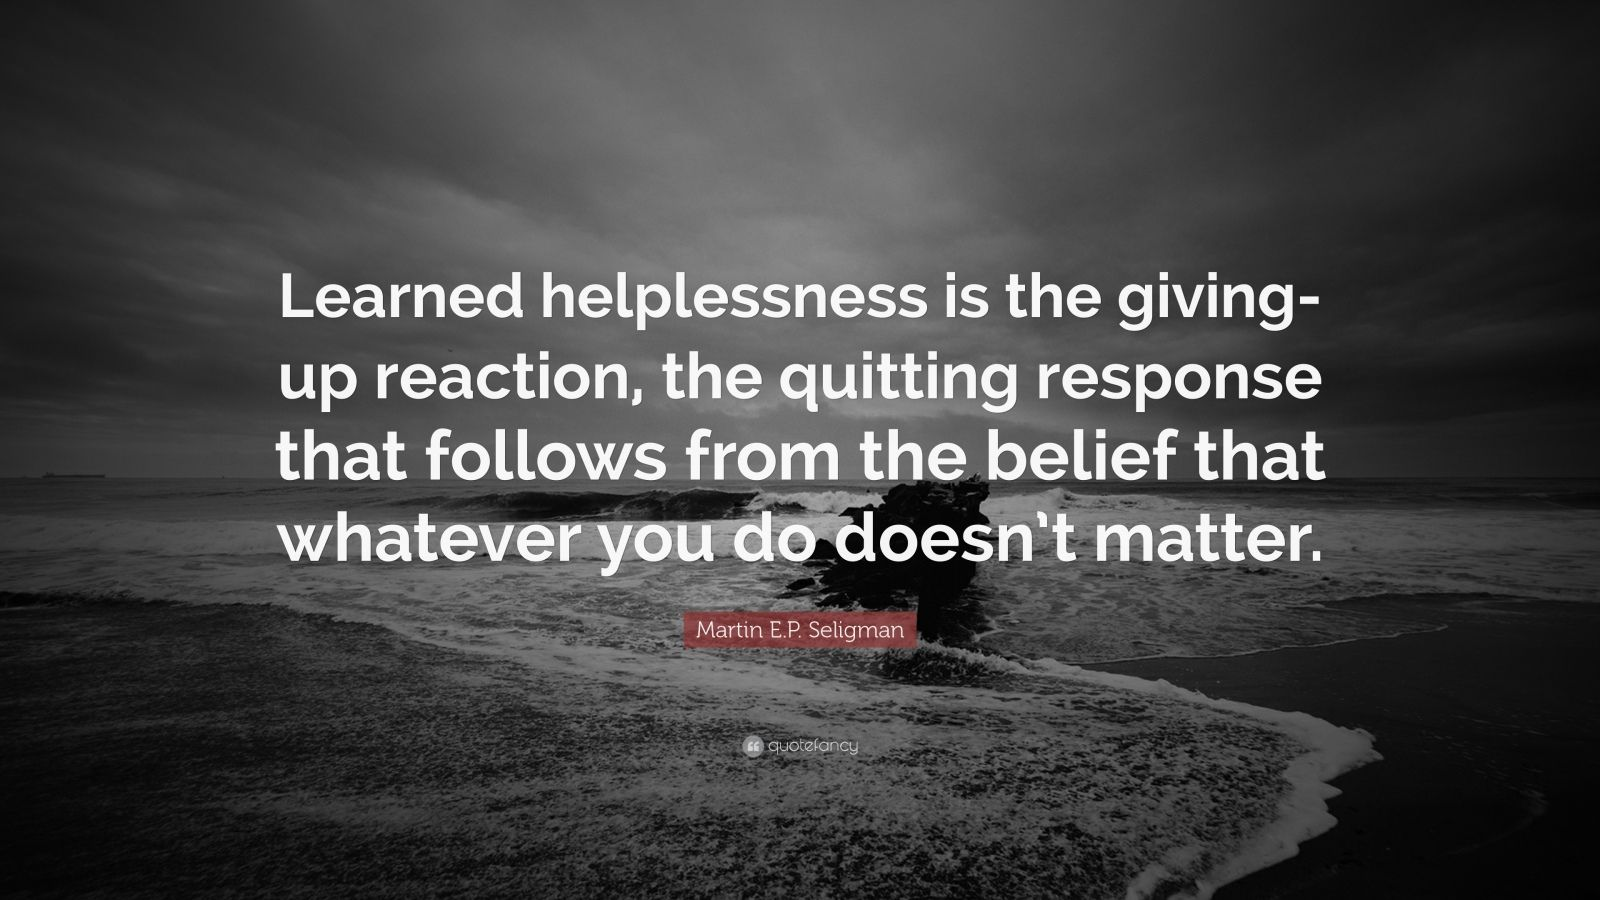 "Martin E.P. Seligman Quote: ""Learned helplessness is the giving-up reaction, the quitting response that follows from the belief that whatever you do doesn't matter."""